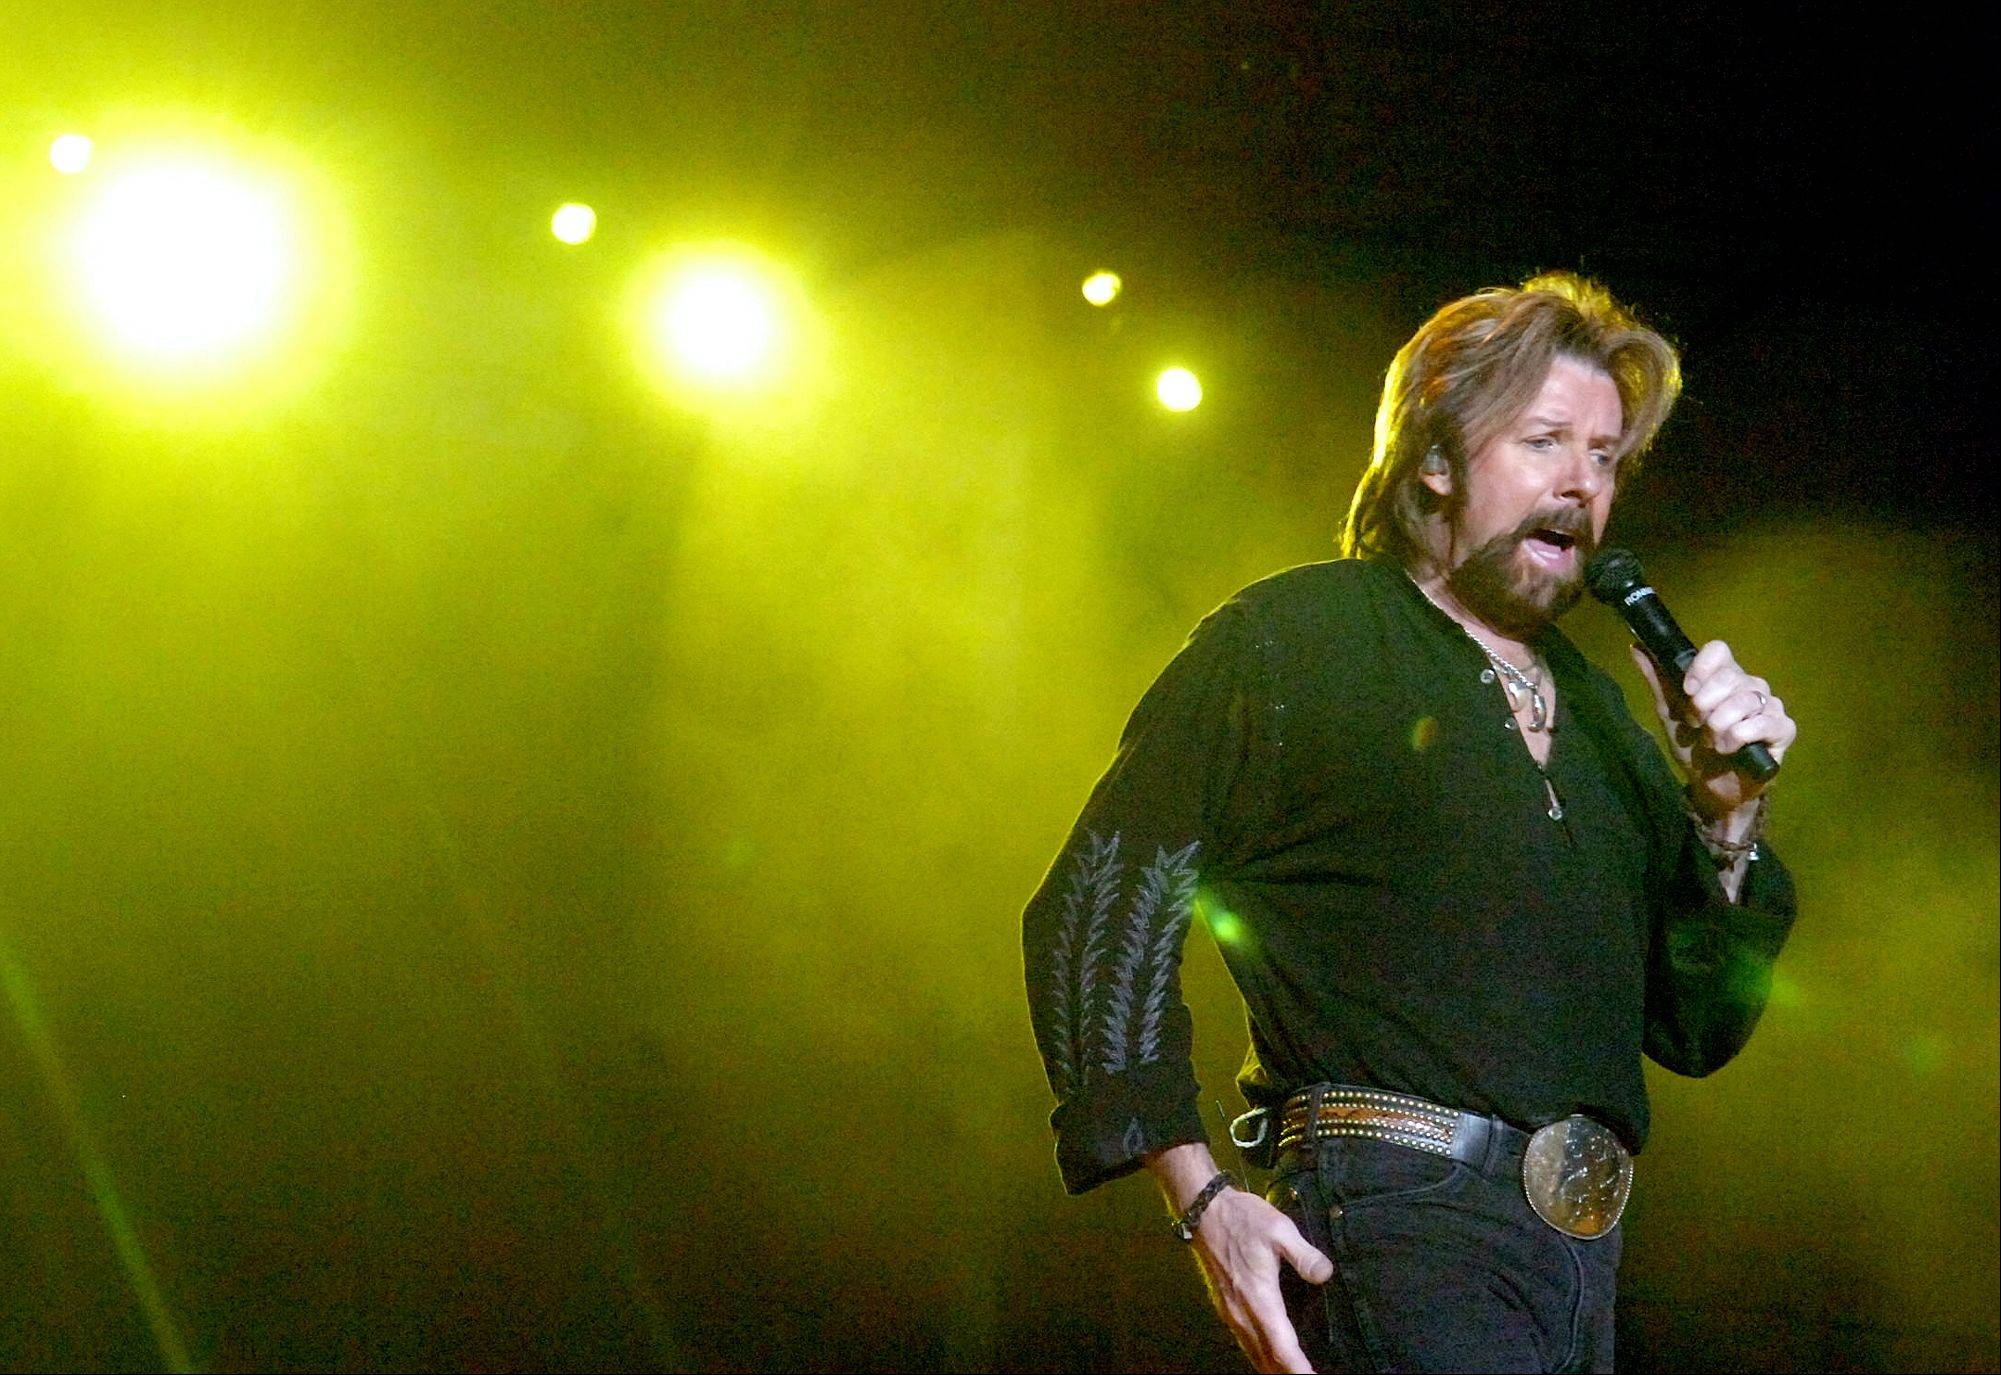 Country music�s Ronnie Dunn will be the featured performer this summer at the eighth annual Rockin� for the Troops concert at Cantigny Park in Wheaton. He replaces Gary Sinise, the longtime face of the event.